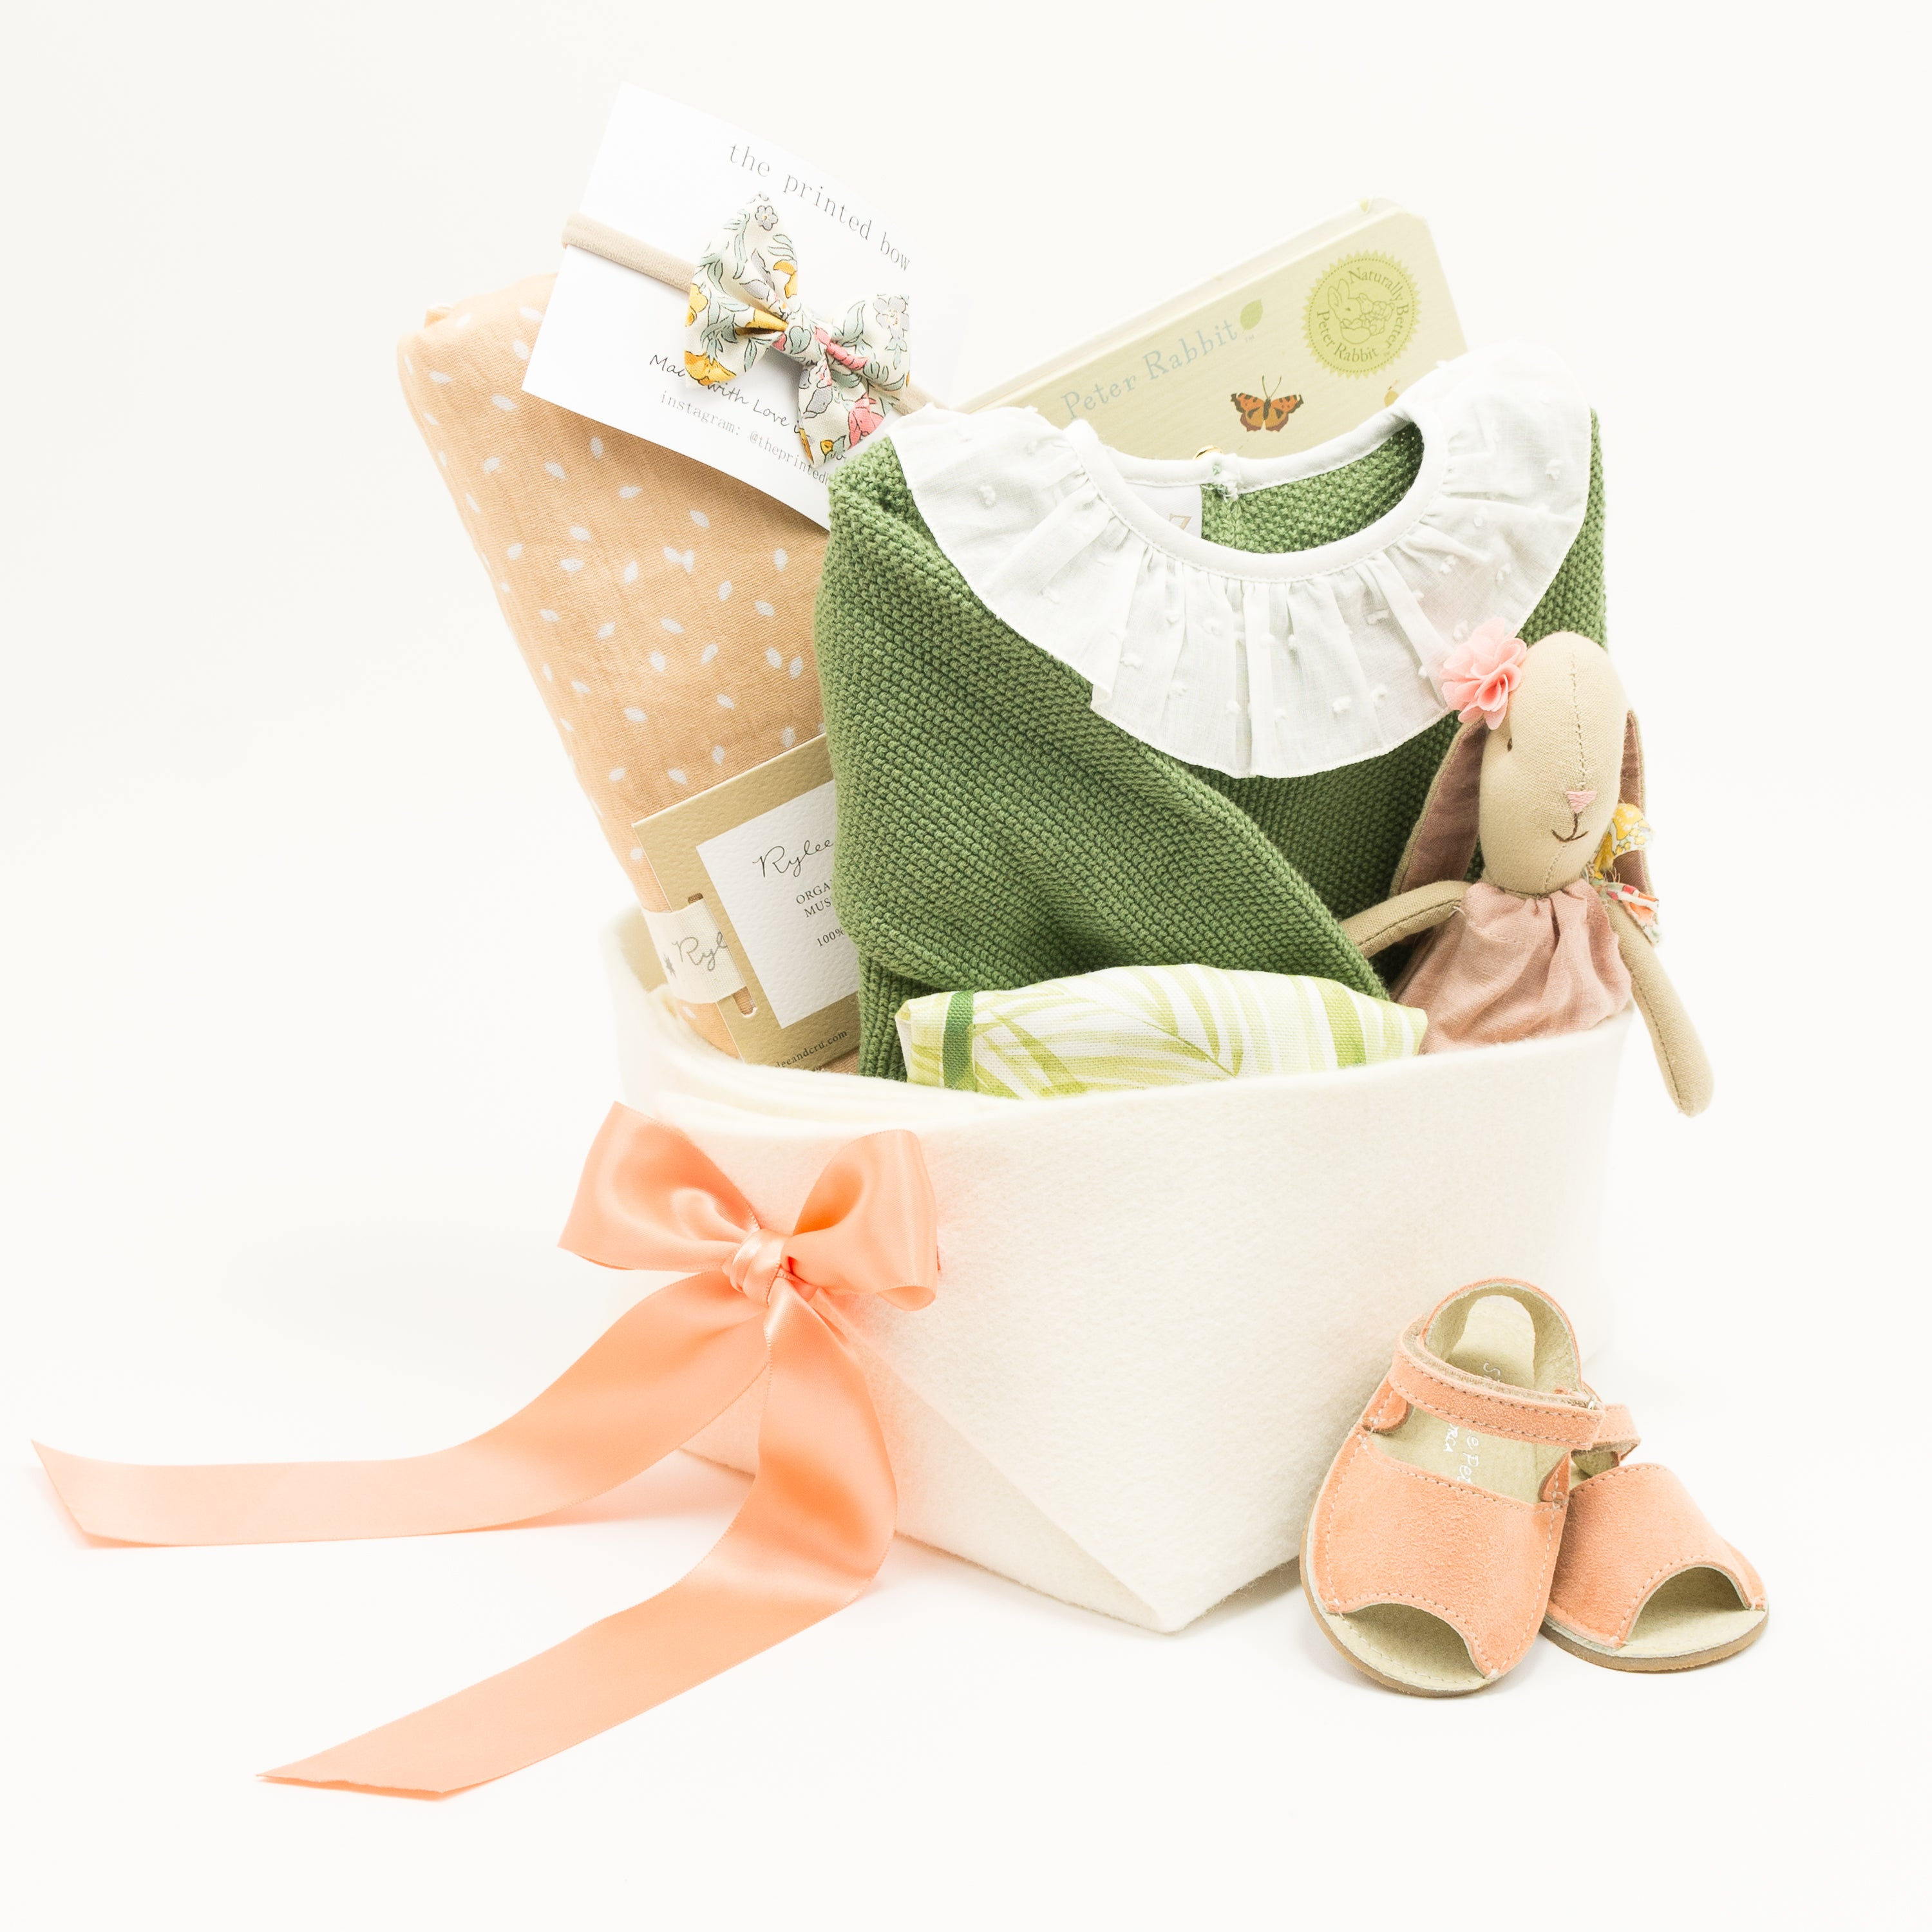 Luxury Baby Gift Basket featuring Paz Rodriguez